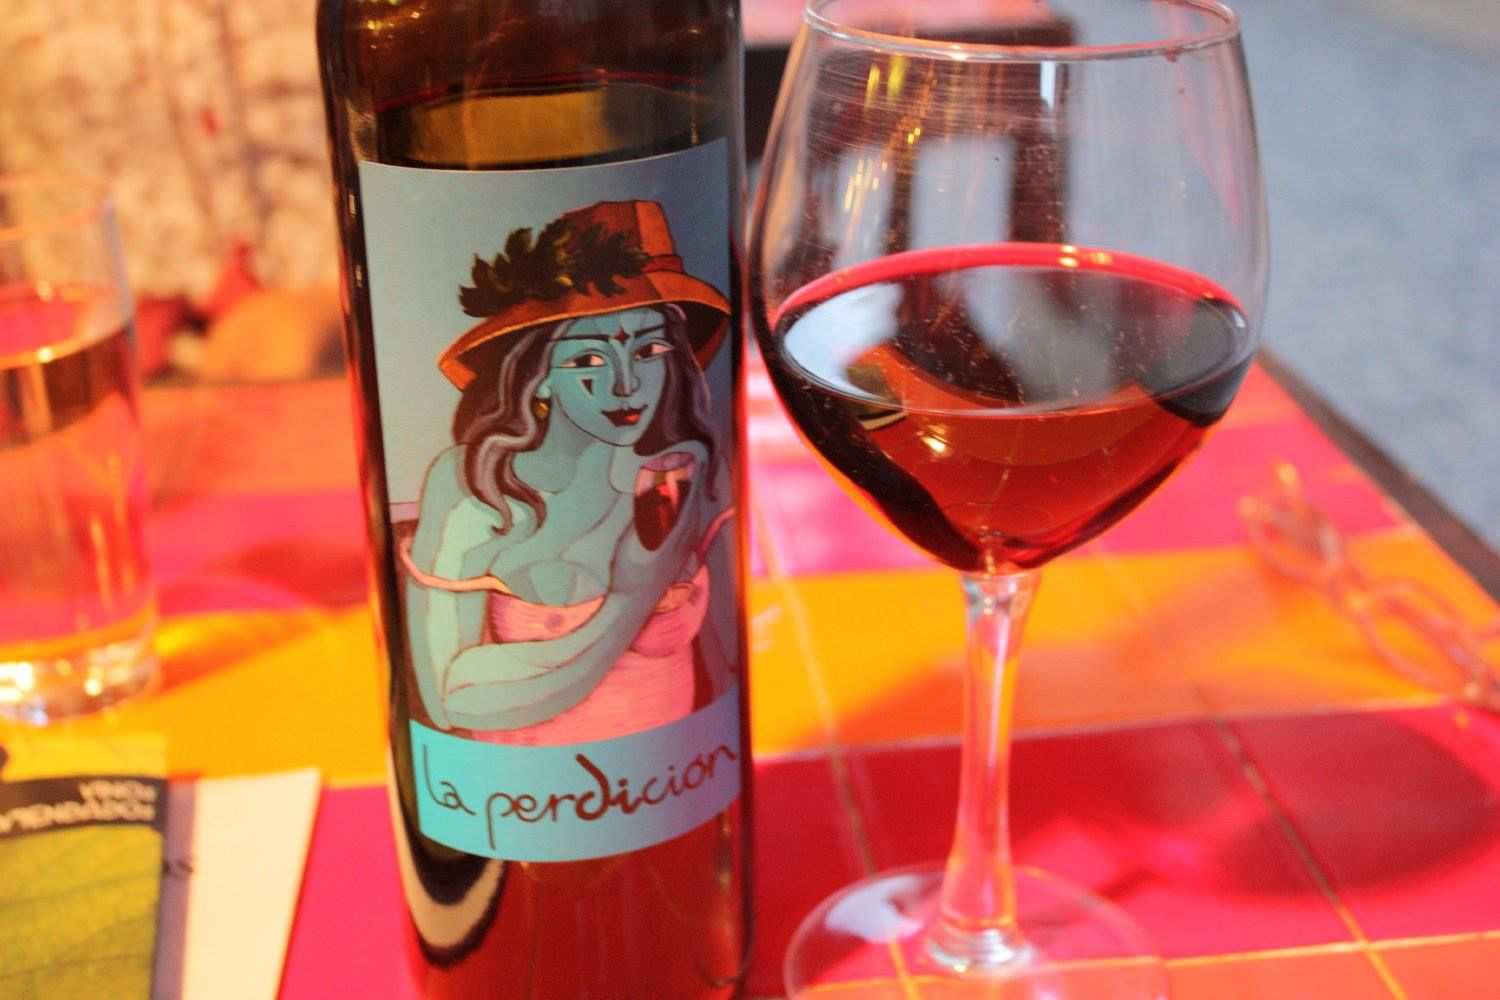 La Perdicion A Different Wine From Castellon